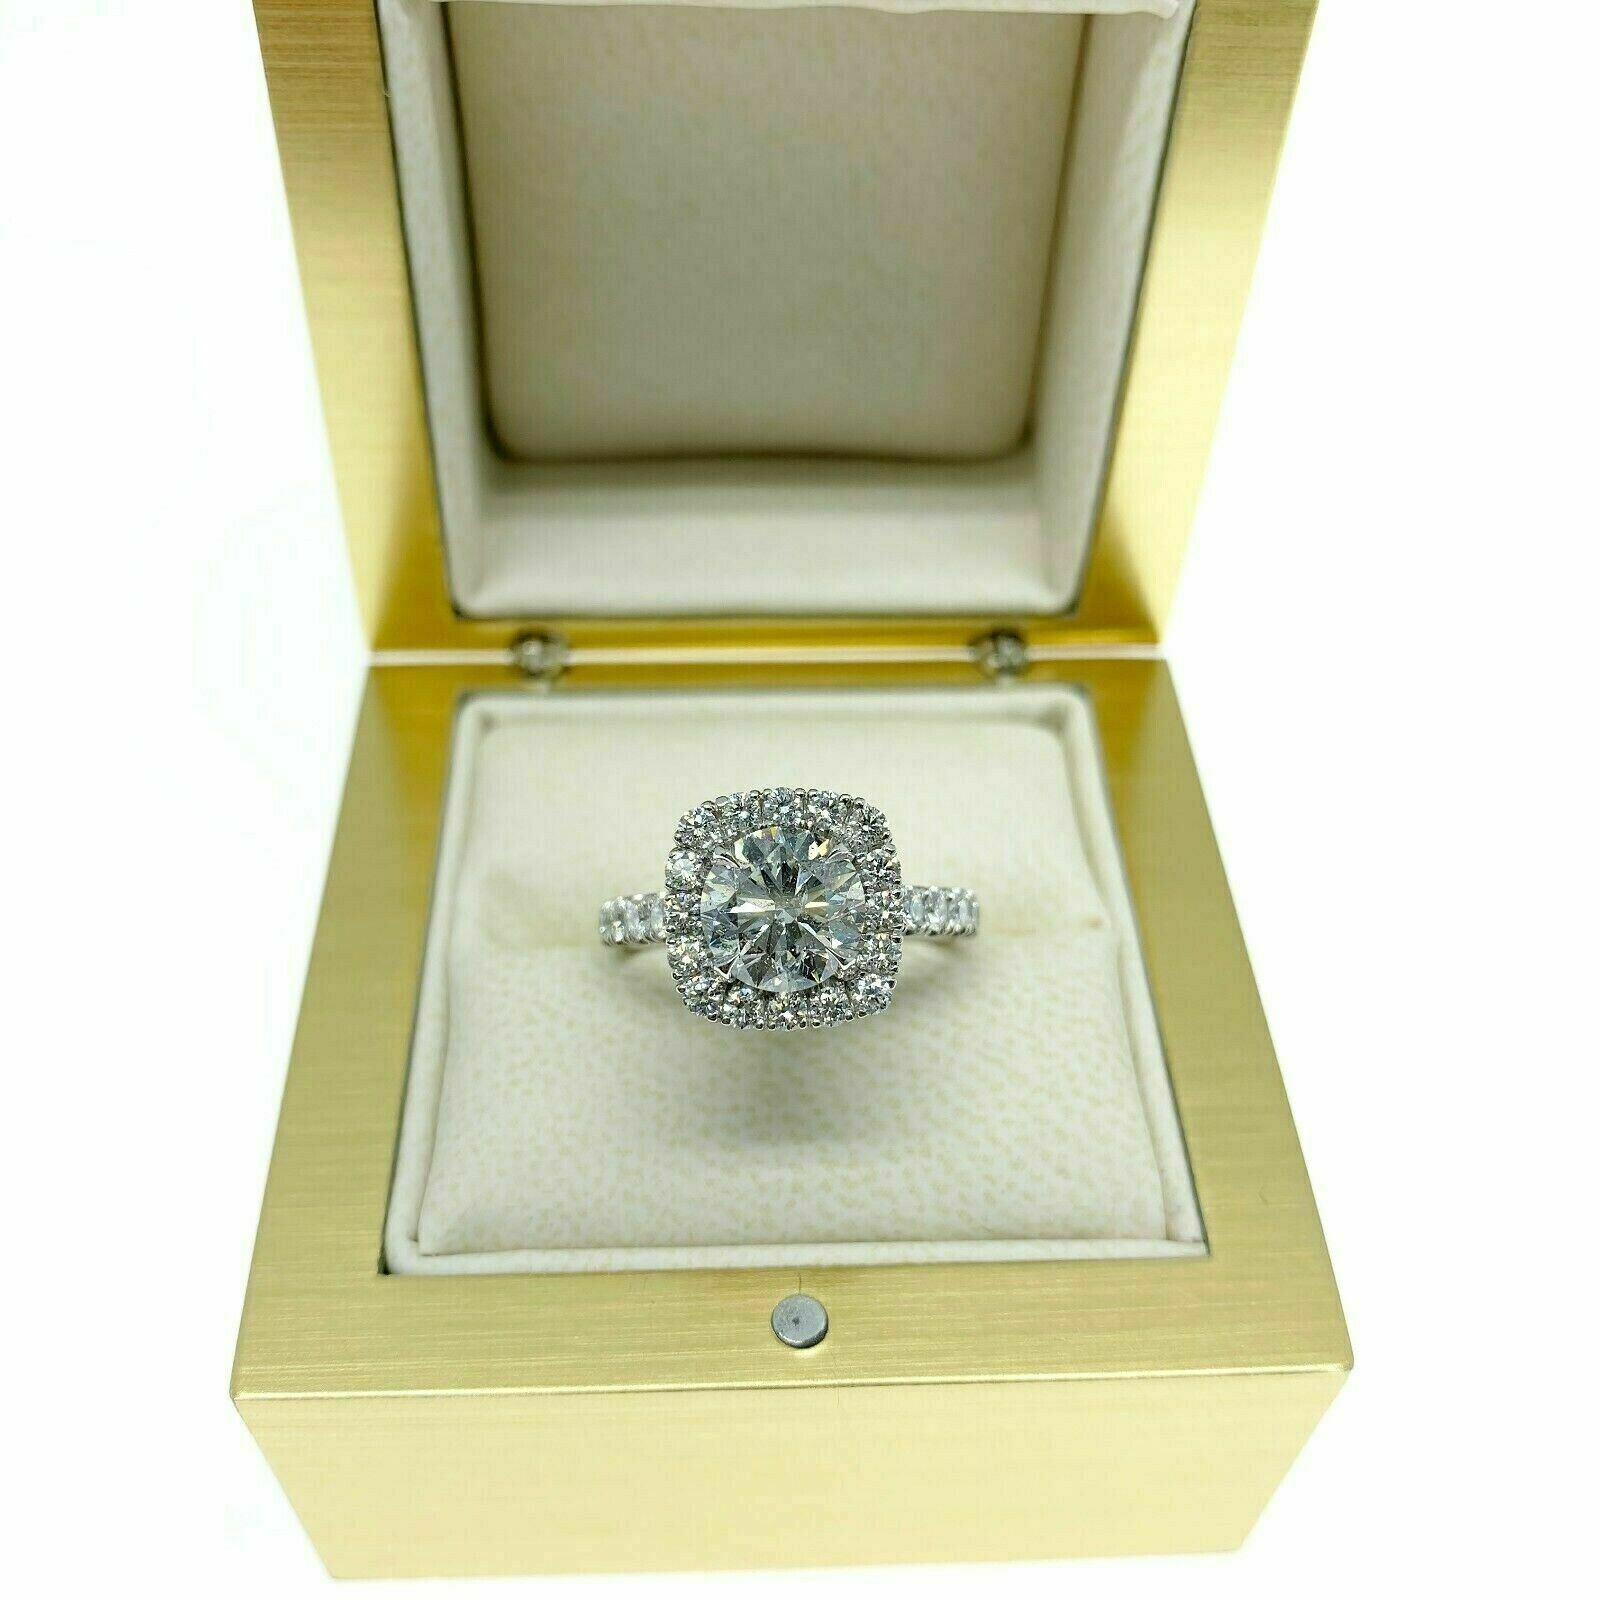 Custom Made Platinum Halo Diamond Wedding Ring AGS 1.50 Carats Center Diamond